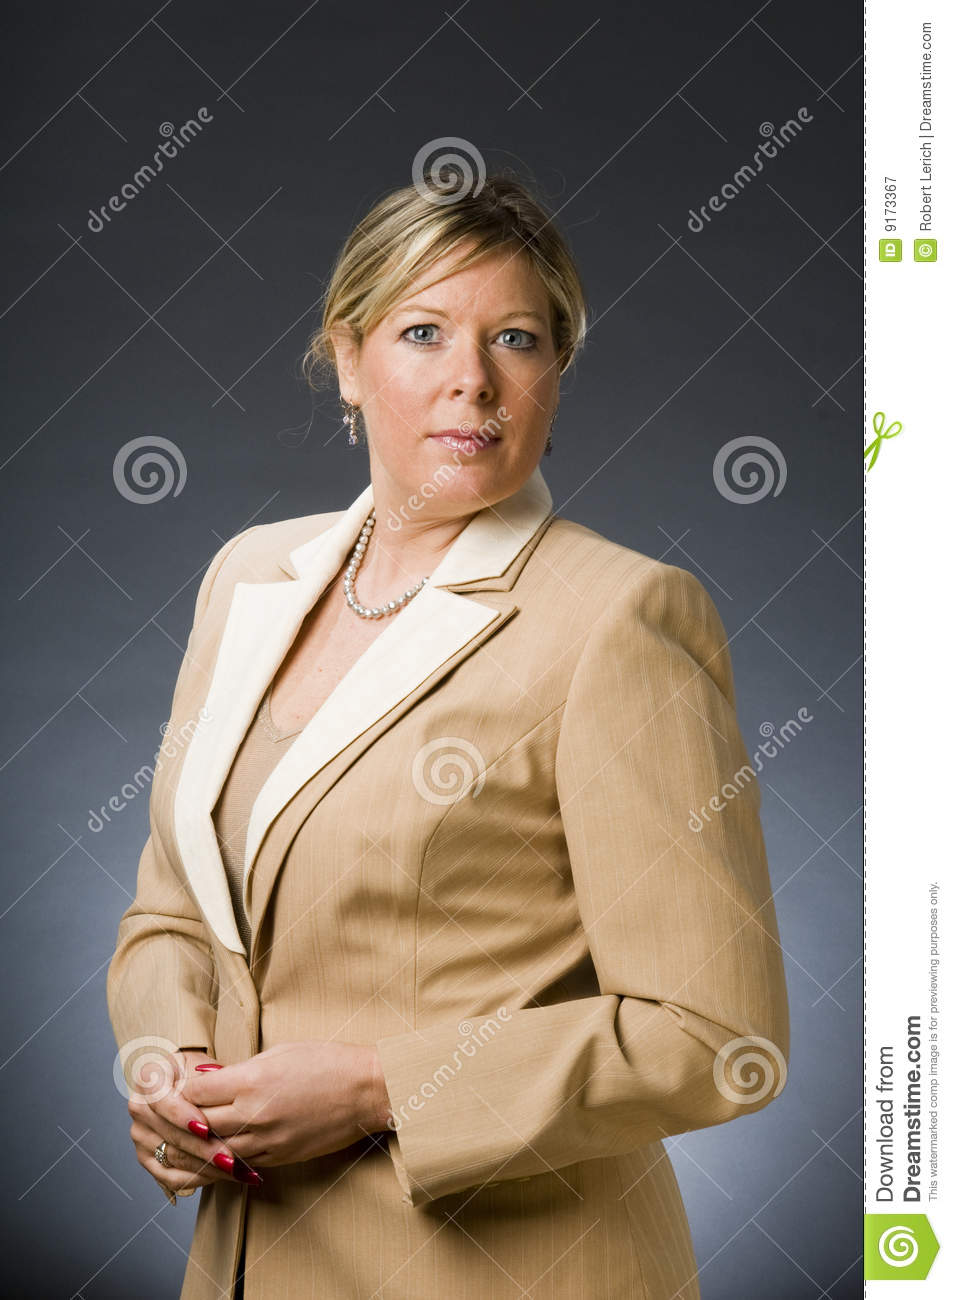 middle aged interview A successful interview contains five key components knowledge of the importance of an interview, preparation of questions, appropriate dress, interview etiquette, and history of interviews an interview is considered the most important part of the hiring process.